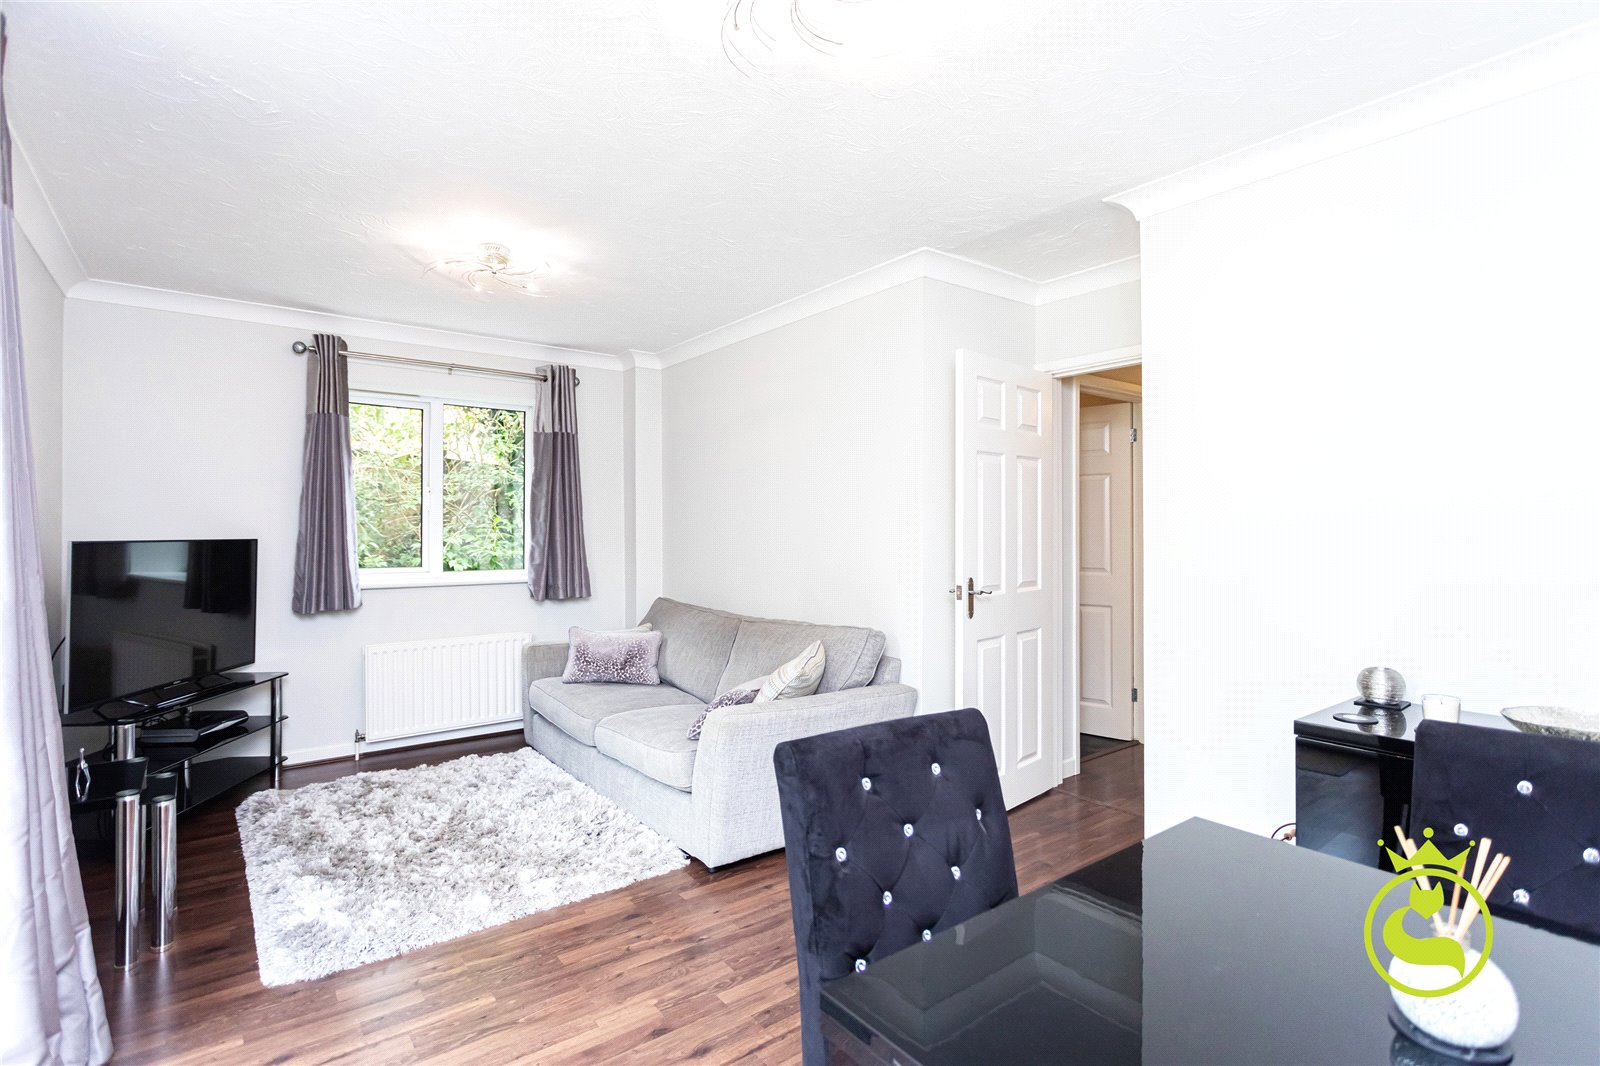 2 bed apartment to rent in Danecourt Road, Poole 0